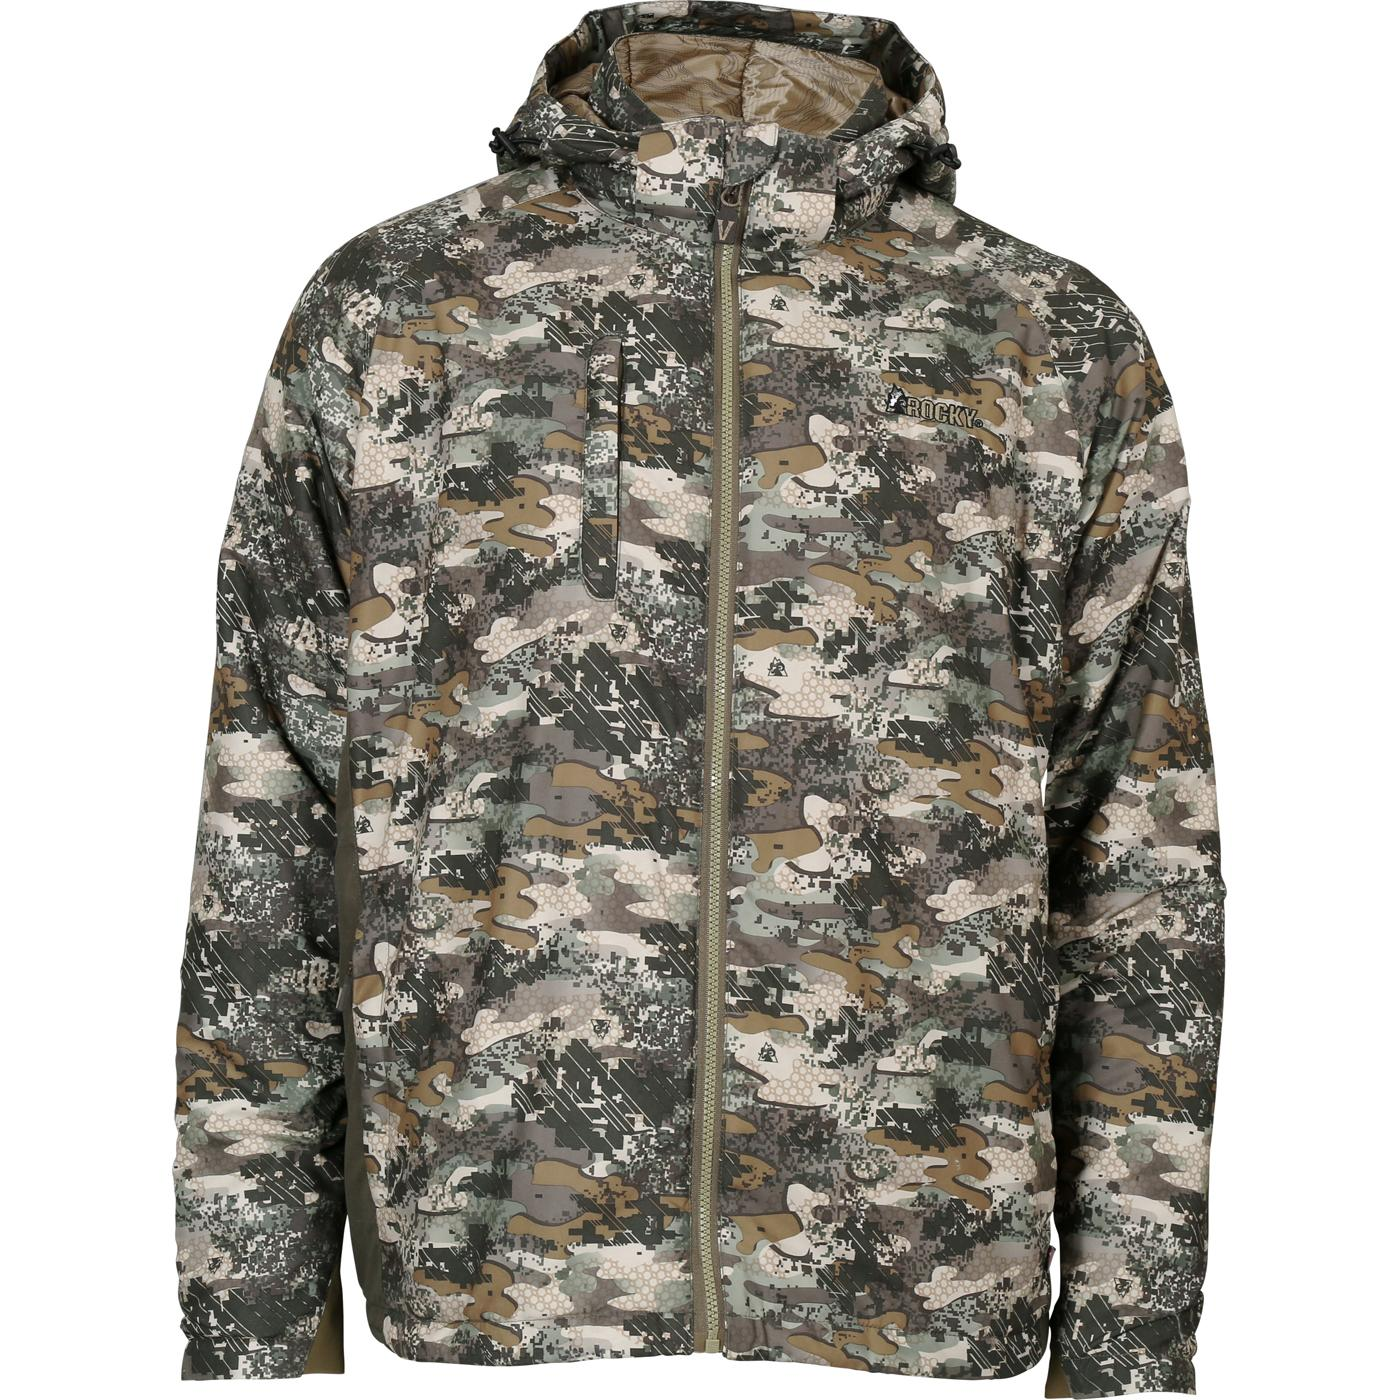 0f9f2755bc992 Rocky Camo Insulated Packable JacketRocky Camo Insulated Packable Jacket,  Rocky Venator Camo